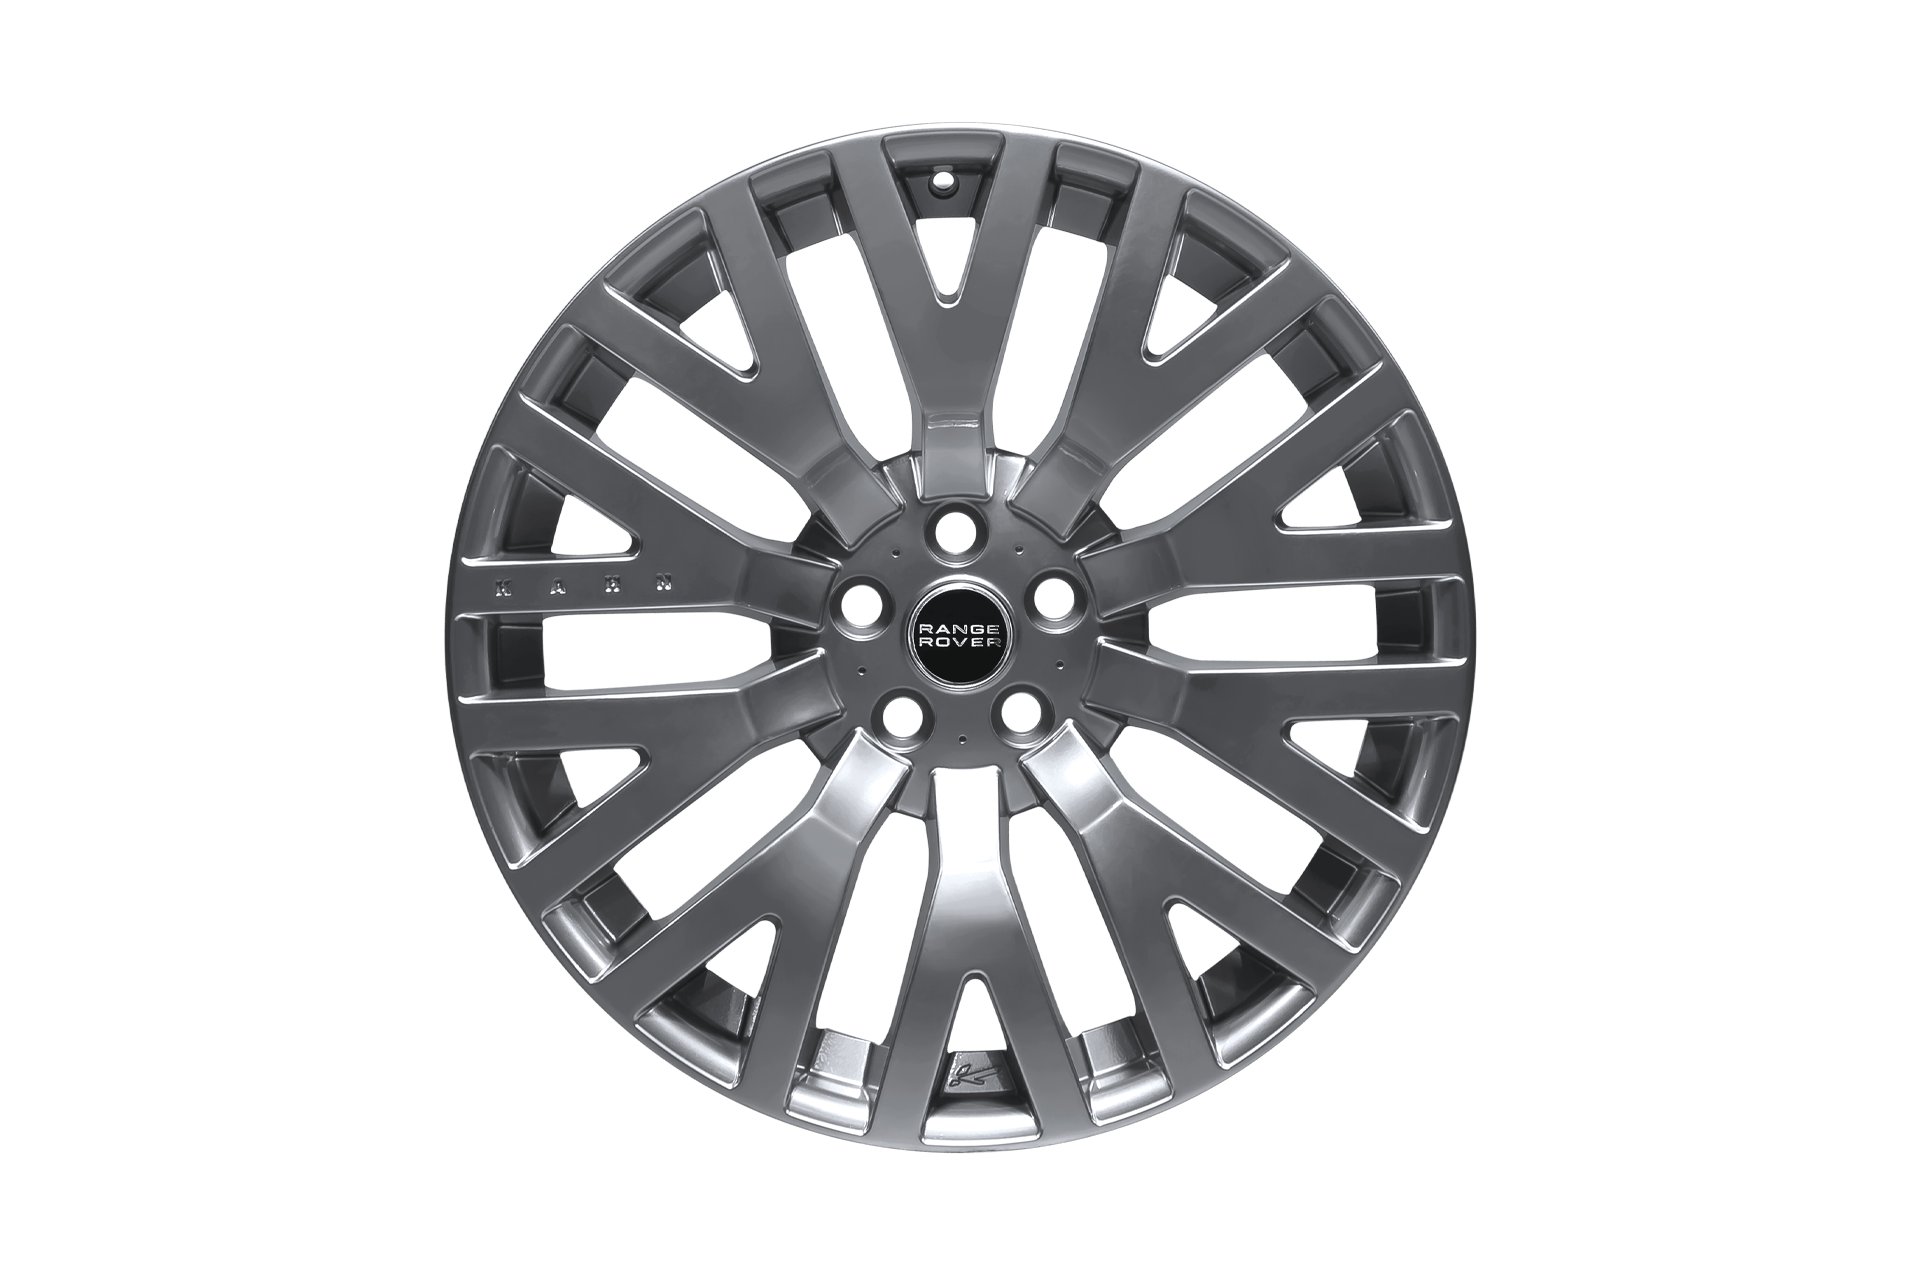 Range Rover Sport (2013-2018) Rs Light Alloy Wheels by Kahn - Image 3459